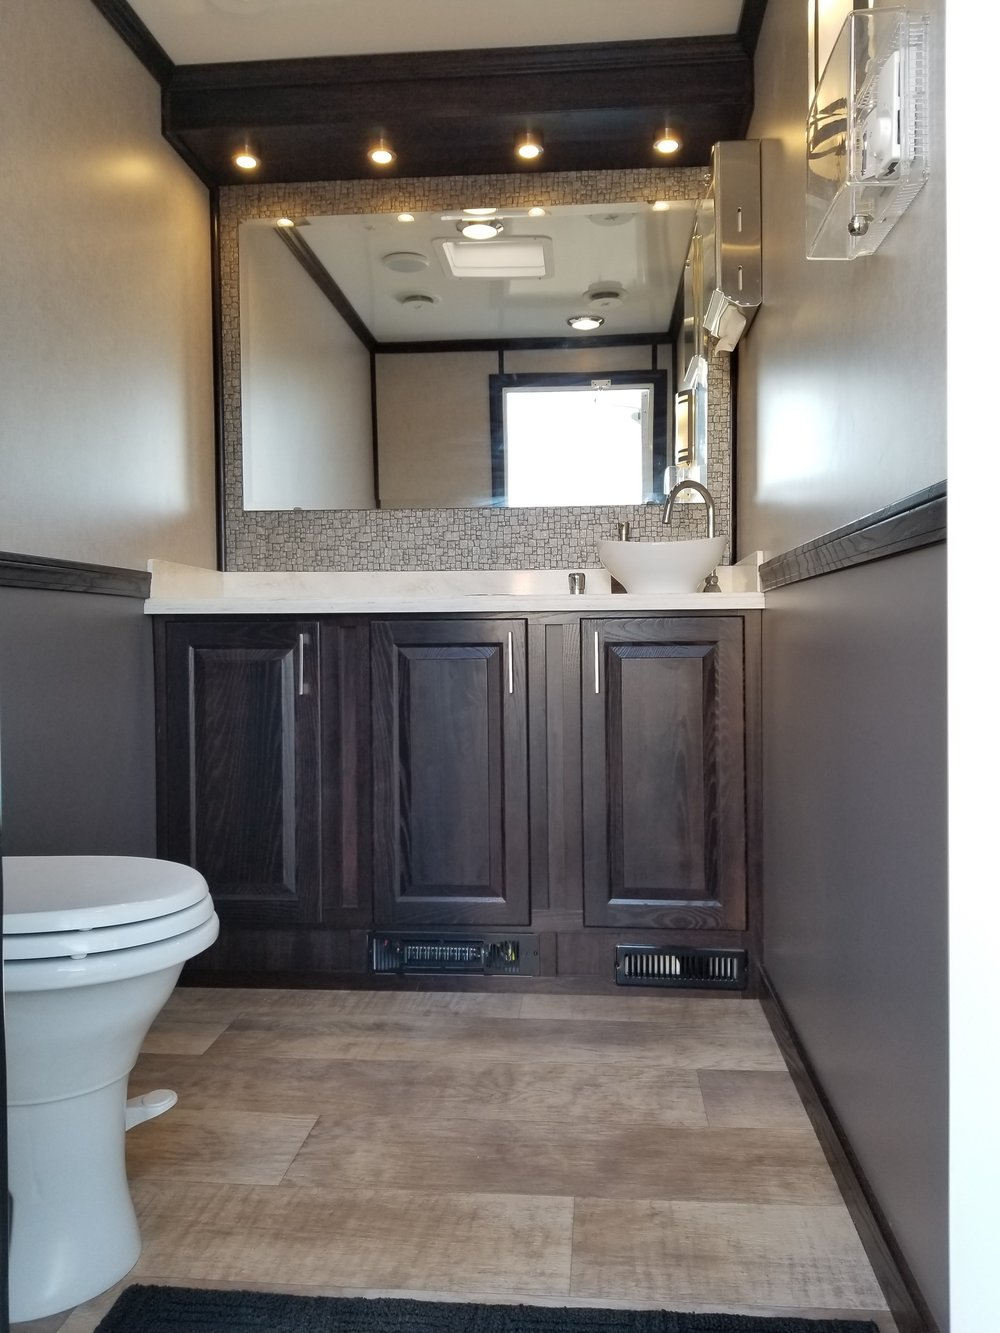 Women's side of 2 person portable restroom trailer